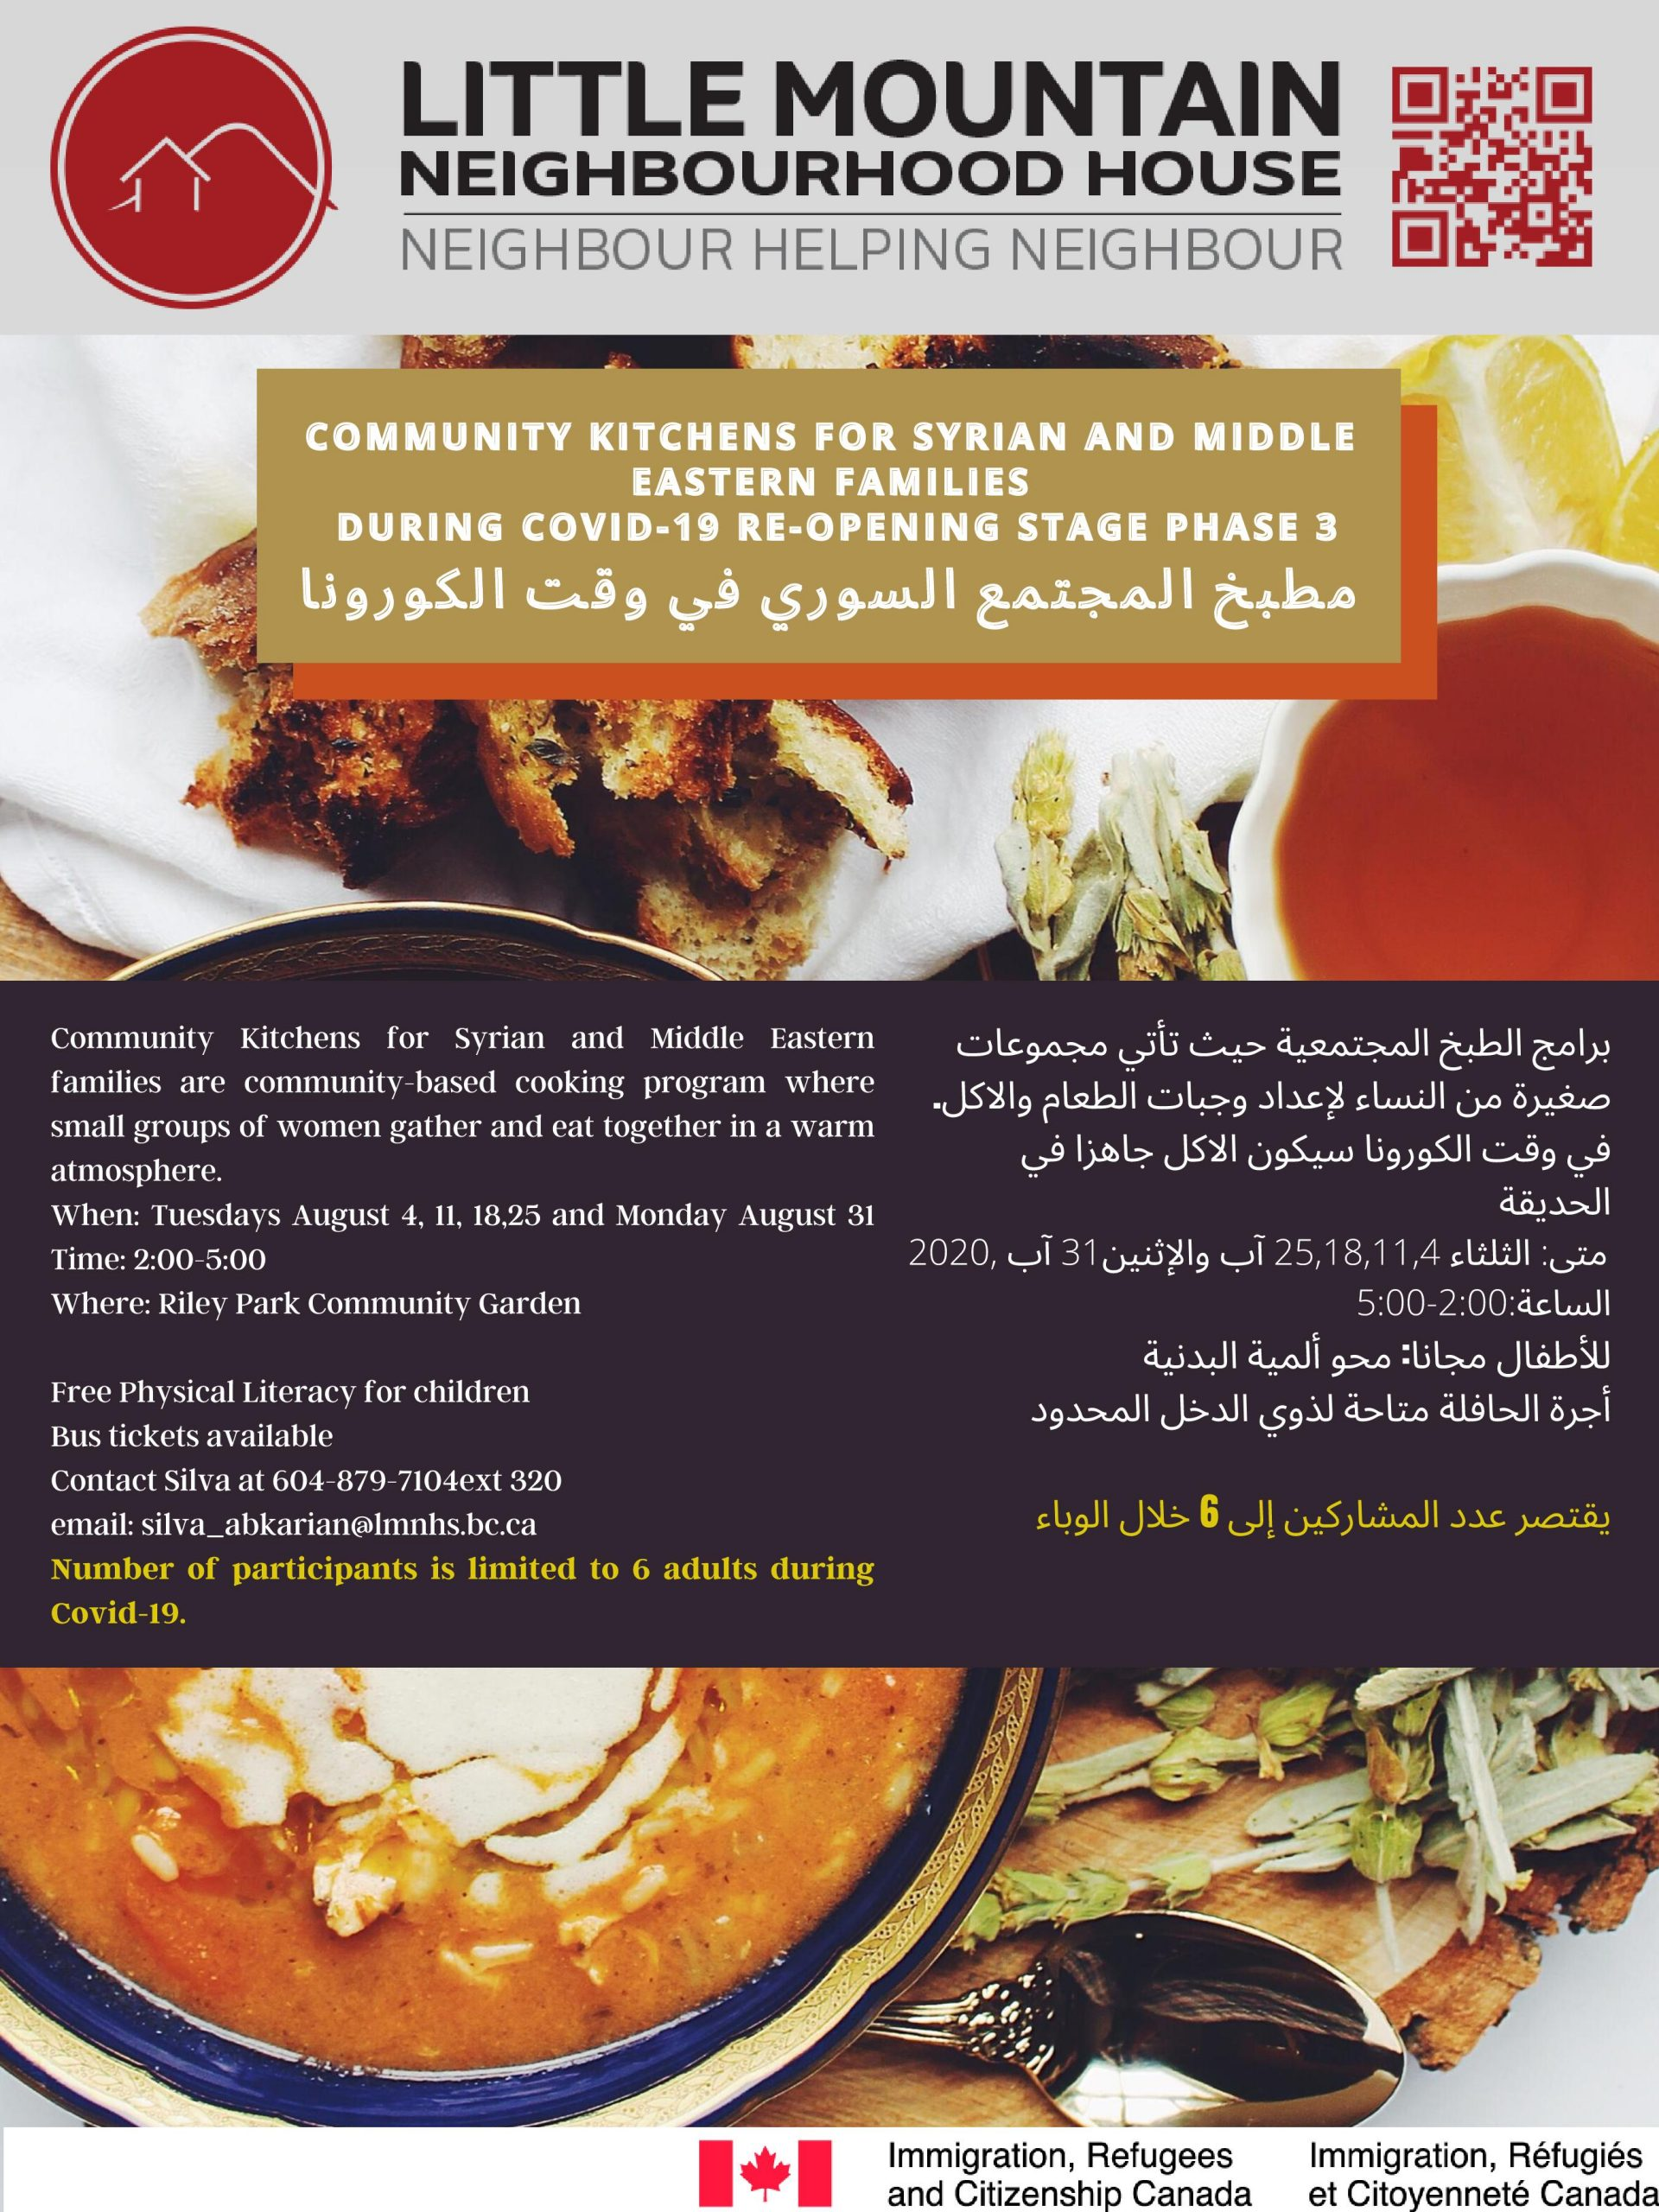 community kitchens for middle eastern families